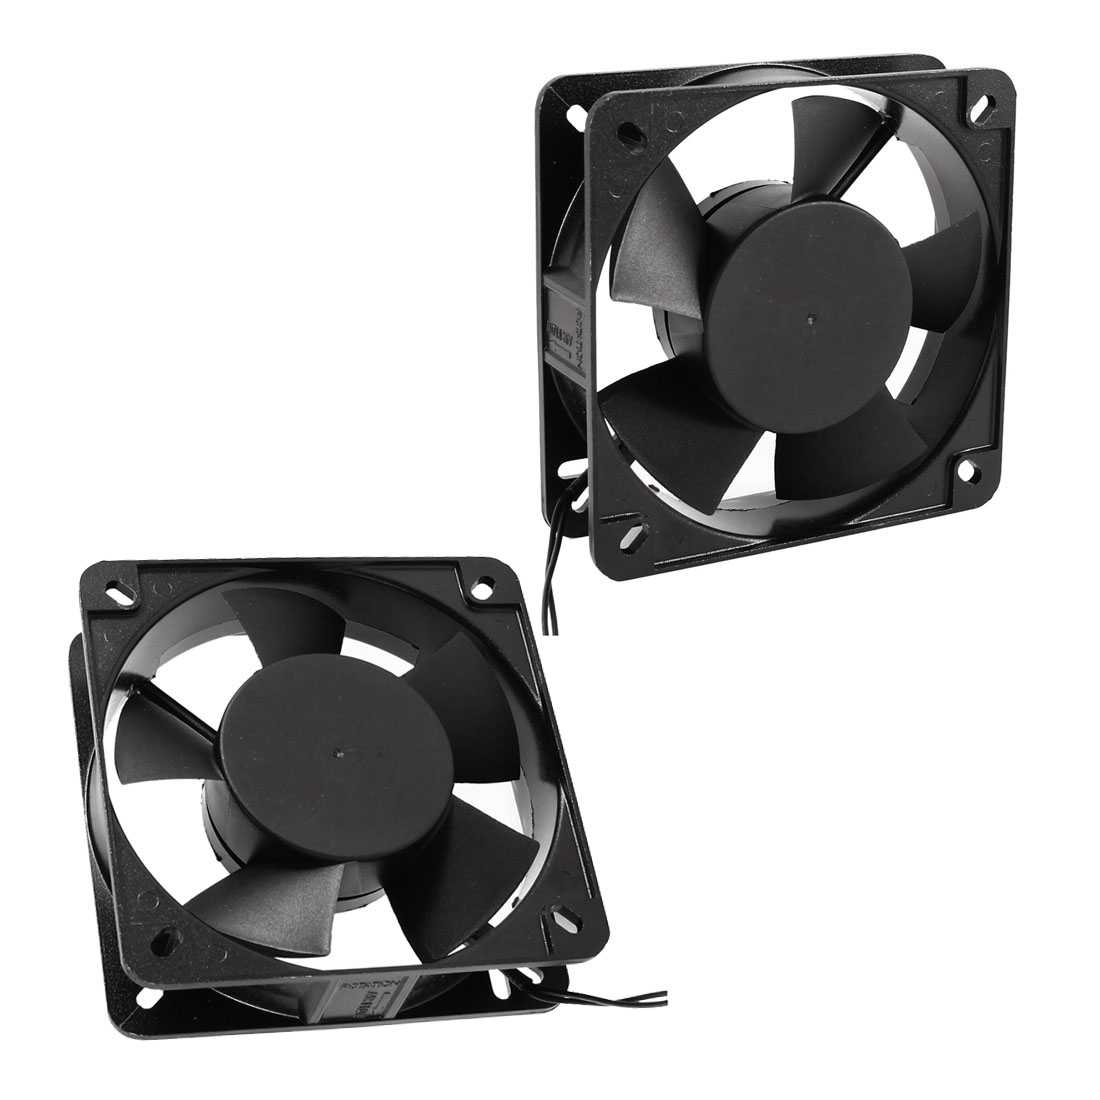 135mm x 38mm 2 Wire Case Cooling Fan Black AC 220V 240V 50/60Hz 0.08A-in  Fans & Cooling from Computer & Office on Aliexpress.com | Alibaba Group